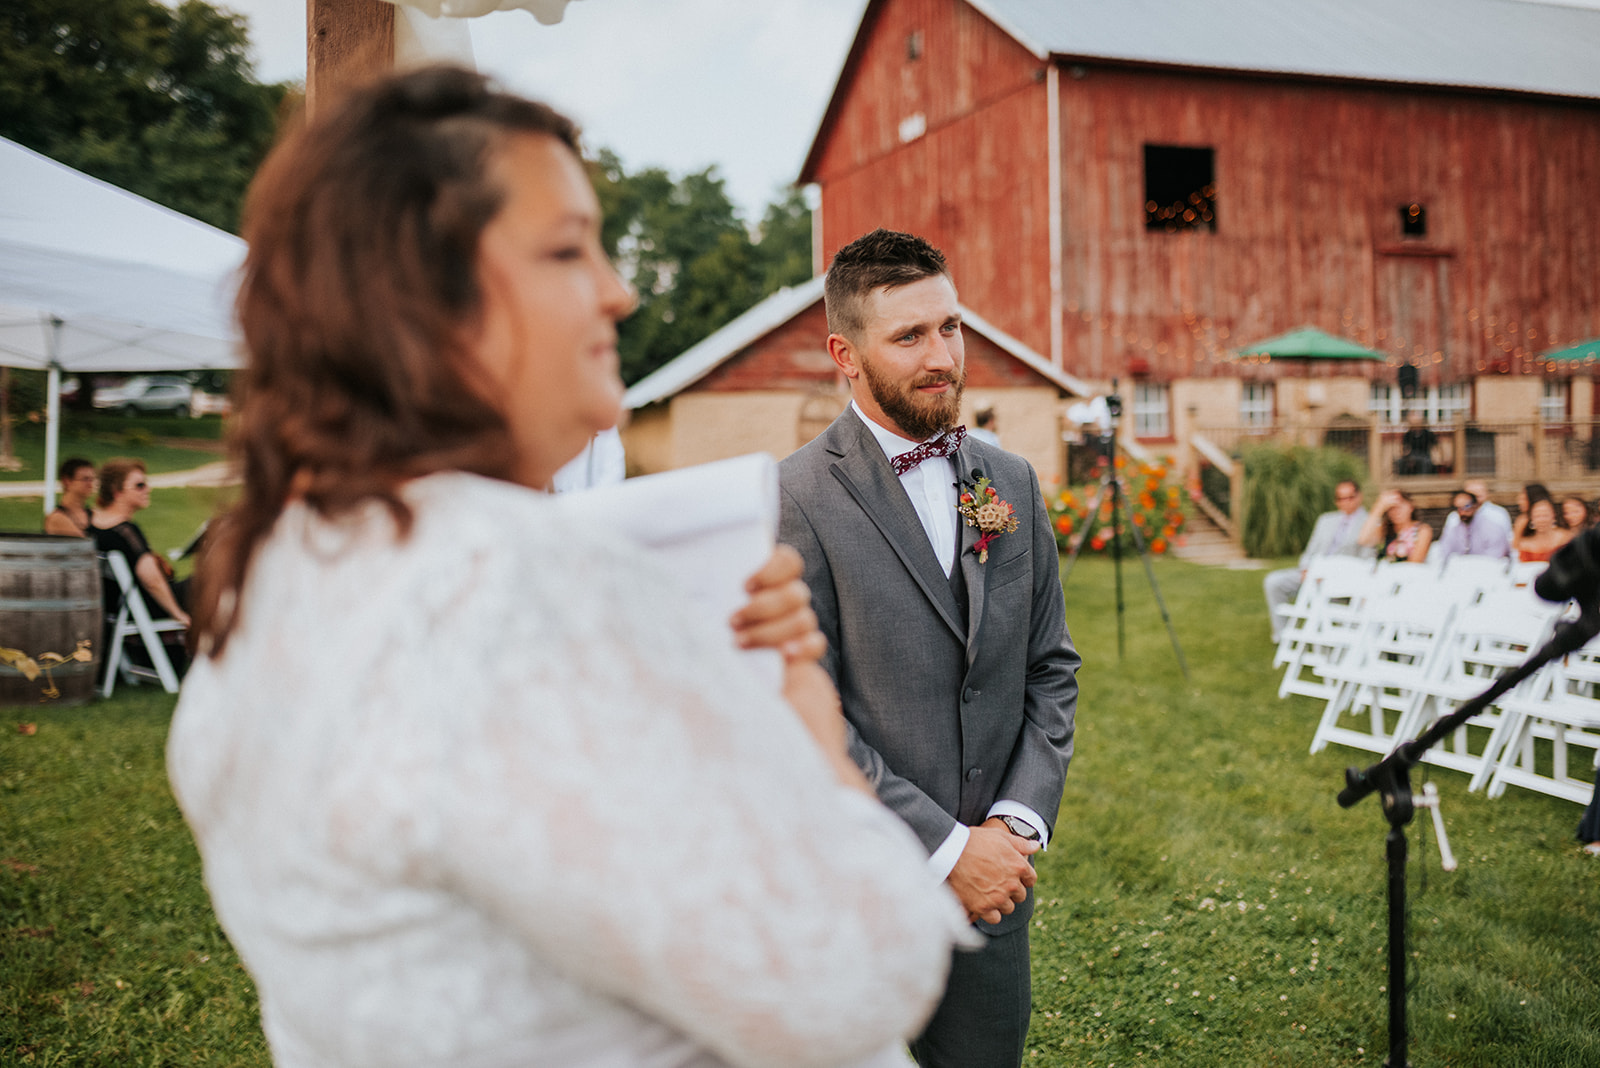 overthevineswisconsinwedding_0653.jpg